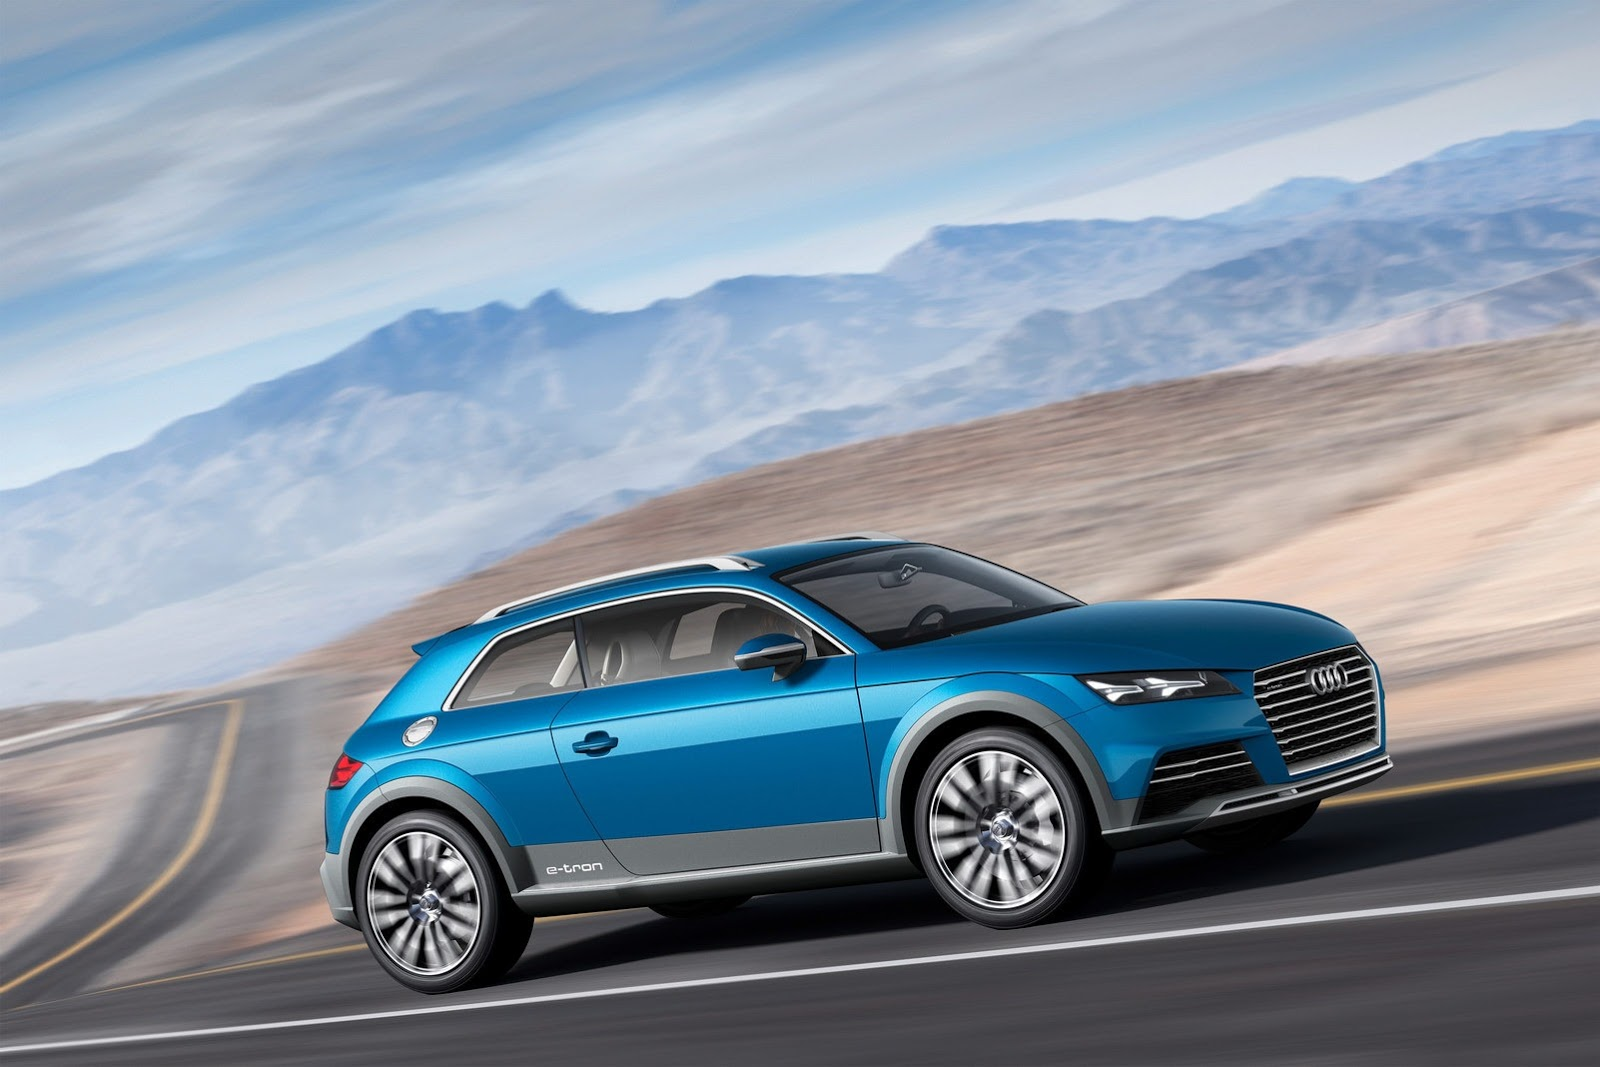 Audi-TT-MK3-Allroad-Shooting-Brake-Concept-02